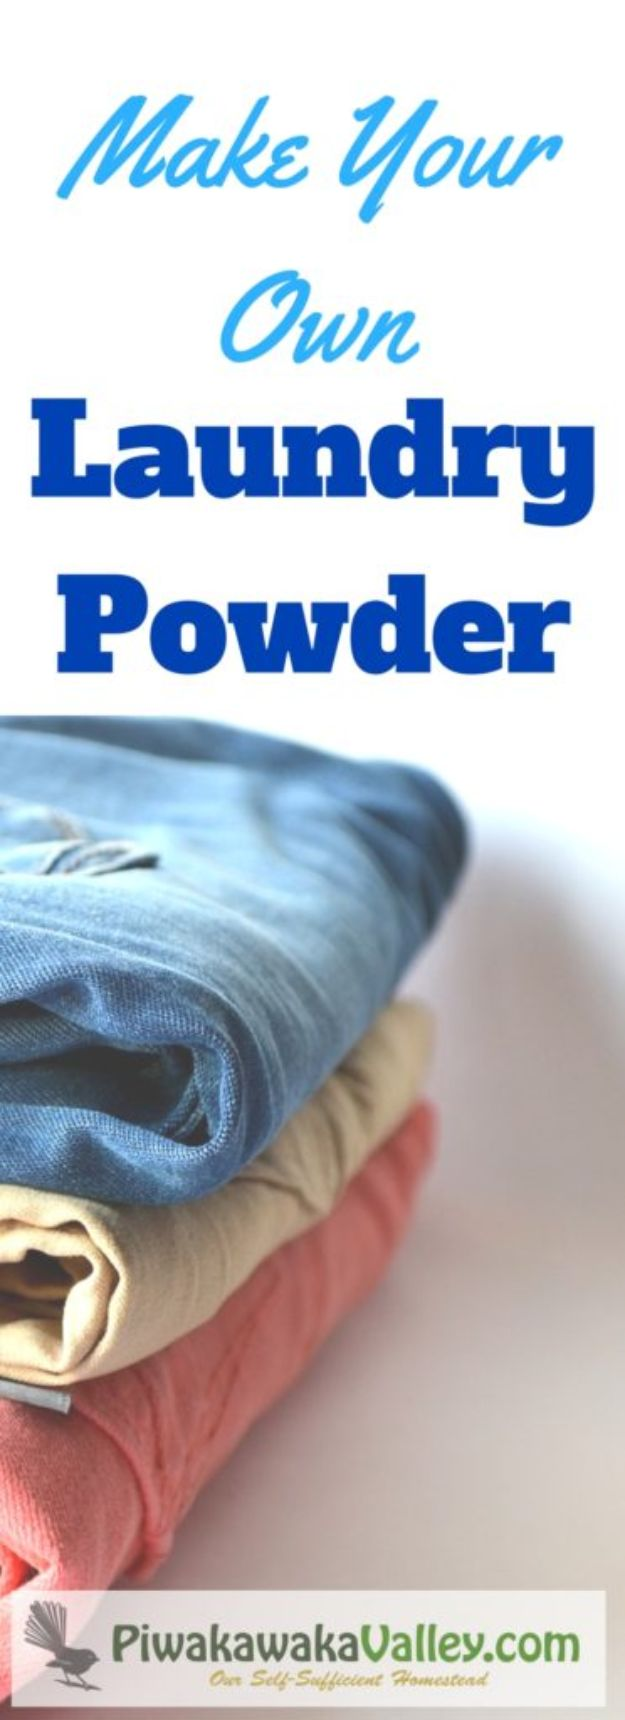 Laundry Detergent Recipes - Make Your Own Laundry Powder - DIY Detergents and Cleaning Recipe Tutorials for Homemade Inexpensive Cleaners You Can Make At Home - Scented Powder and Liquid for He Washer - Save Money With These Cheap Ideas - Natural Products With Essential Oils - Baby, Sensitive Skin Detergent Free Ideas http://diyjoy.com/diy-laundry-detergent-recipes